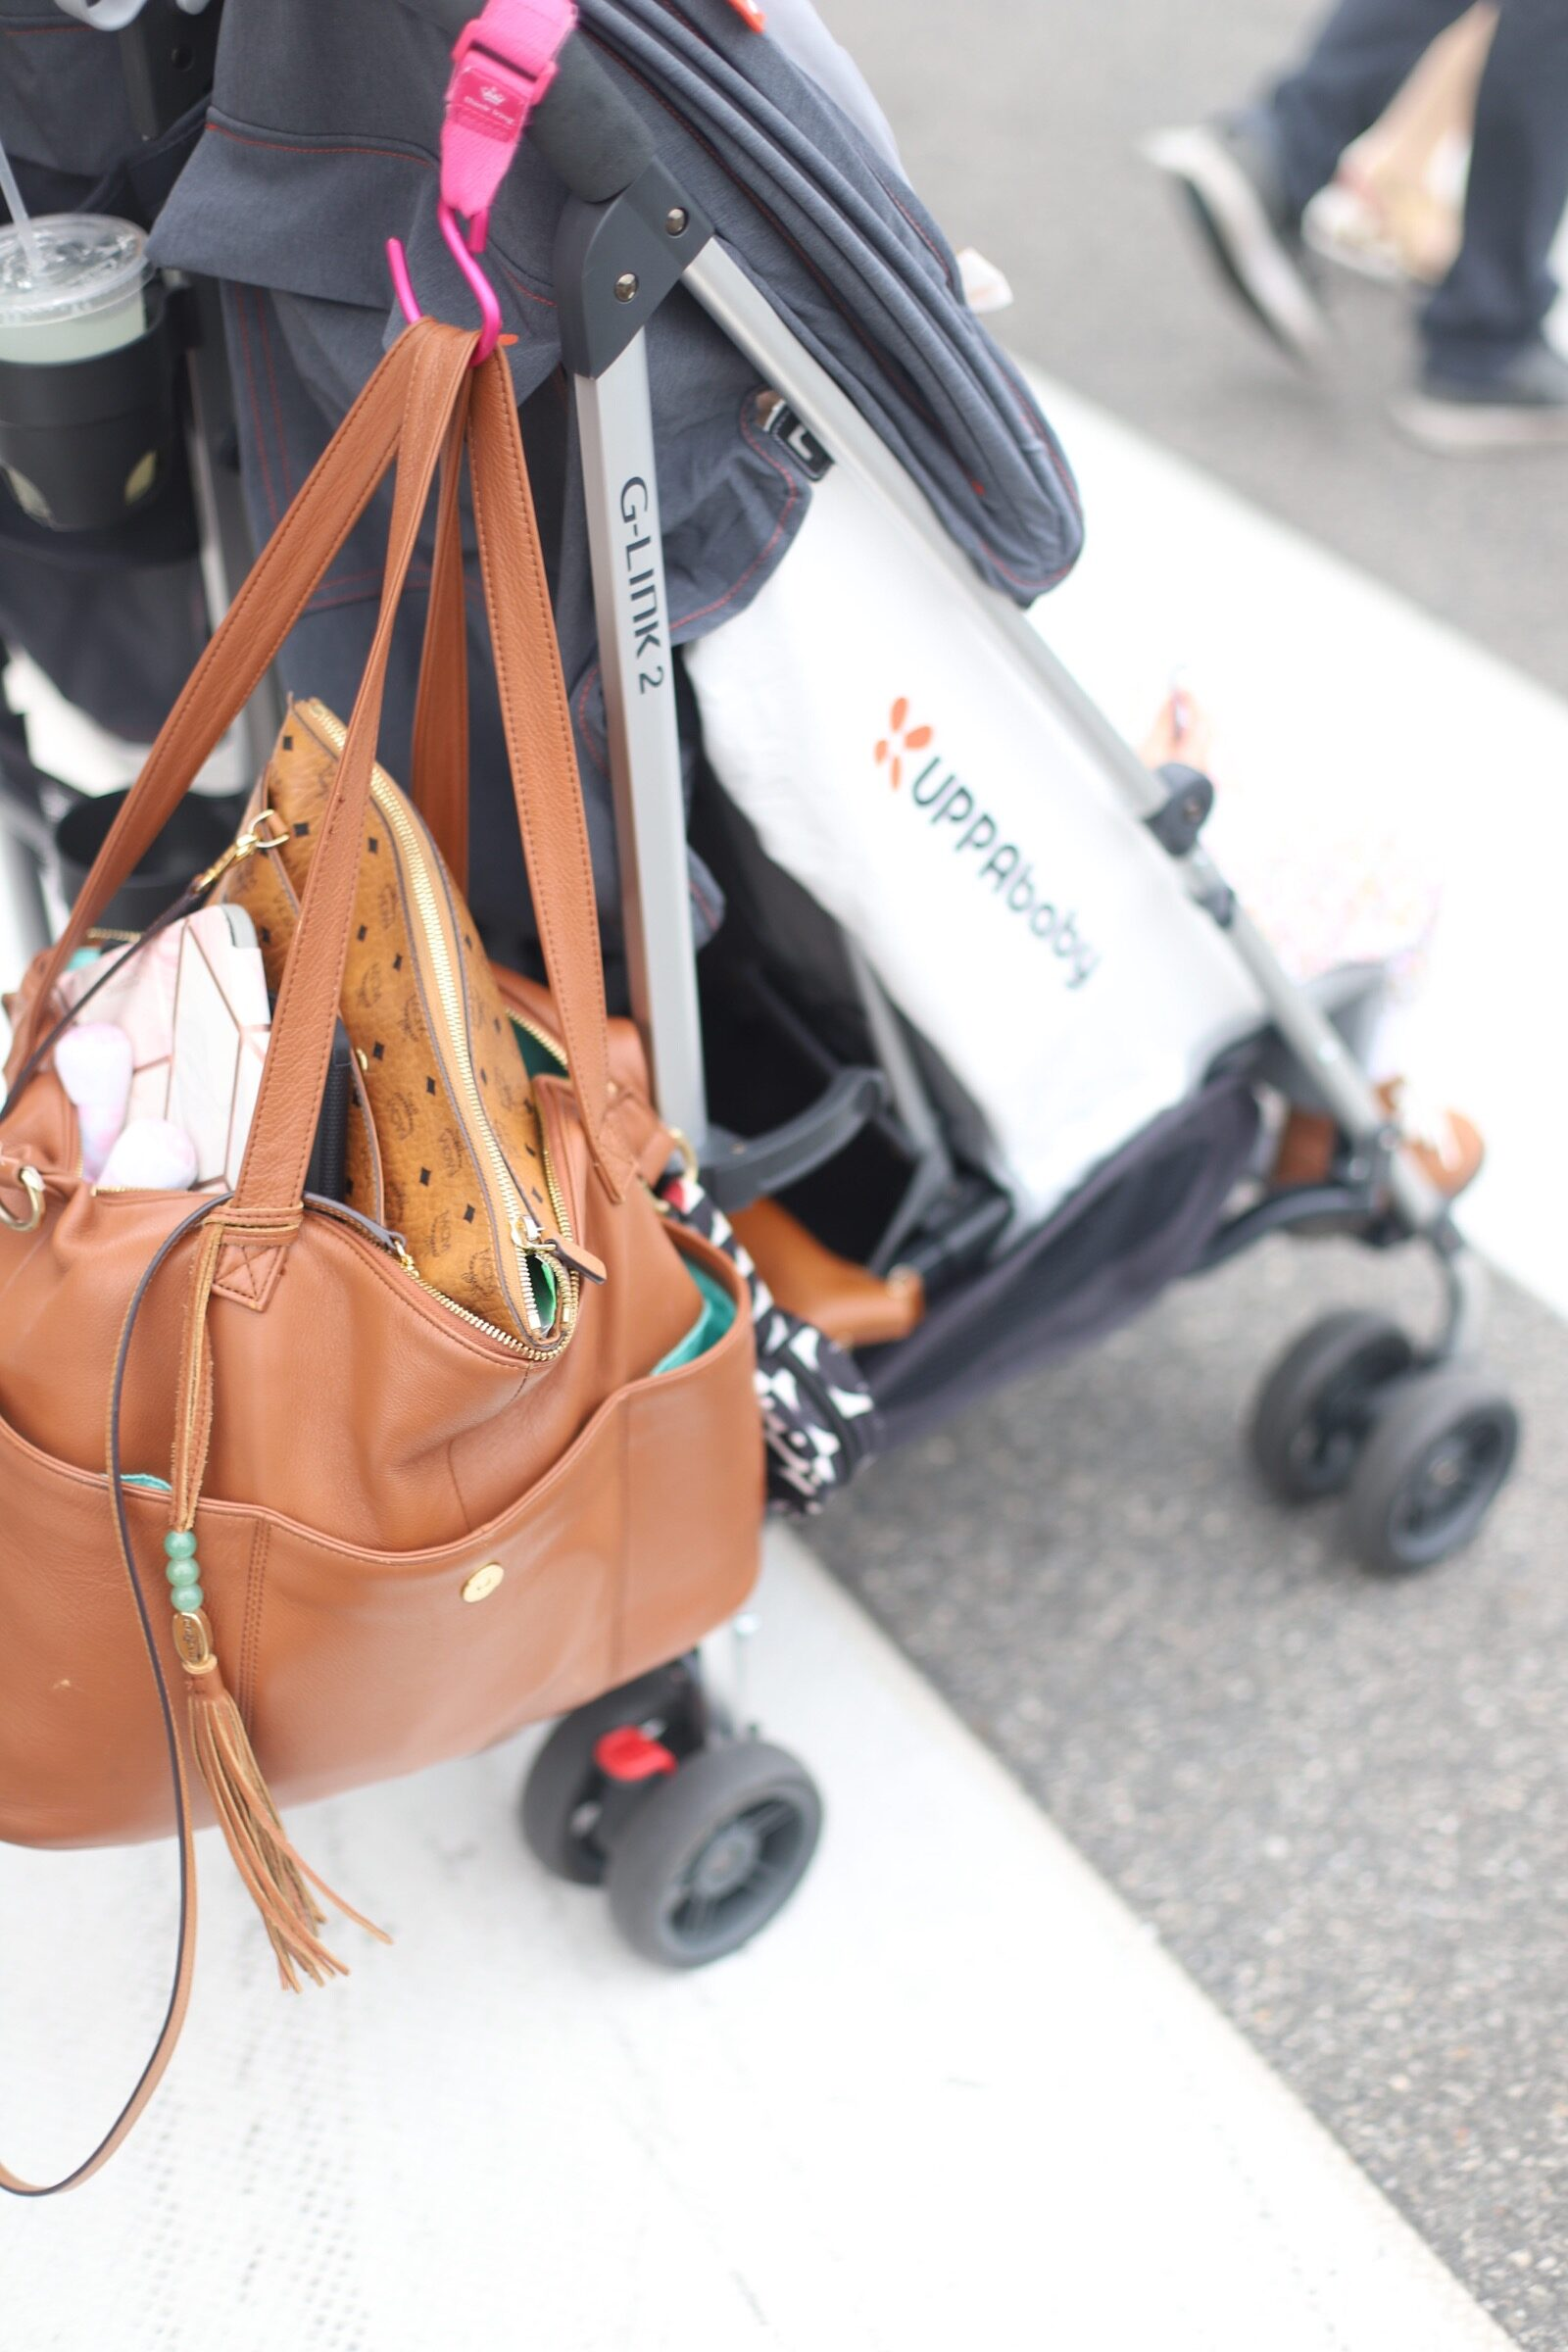 stroller with a leather bag hanging